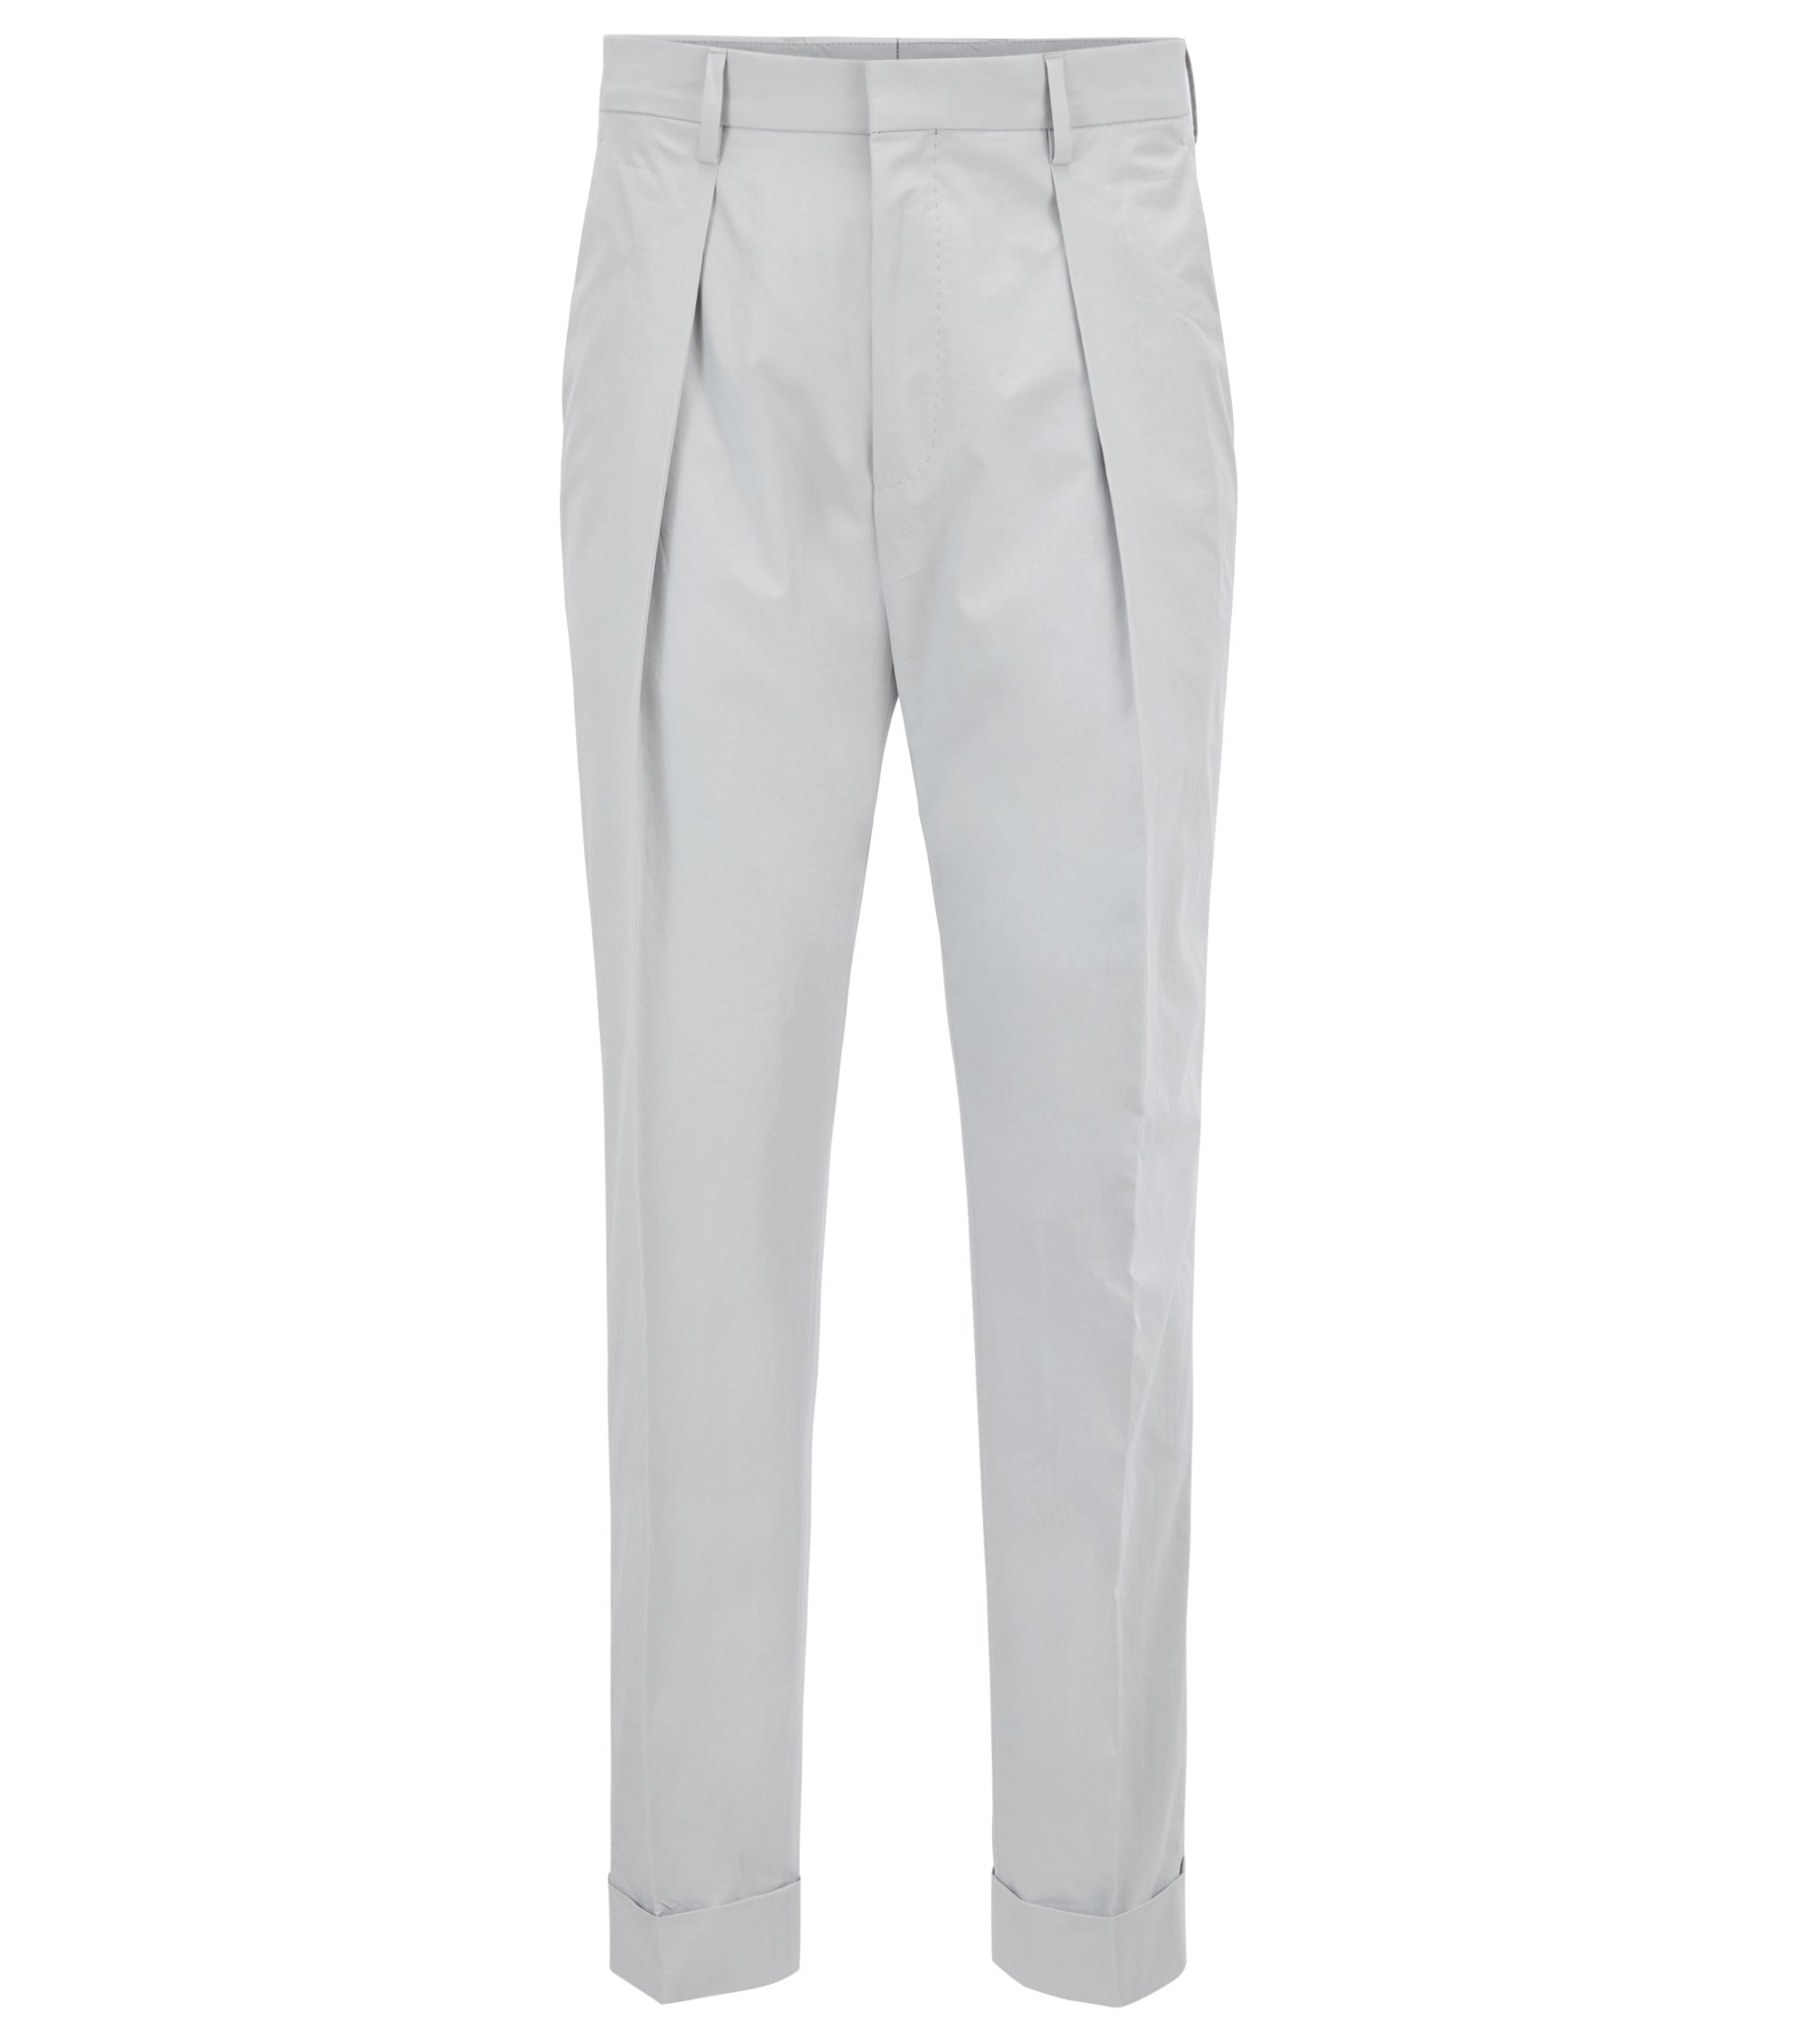 Pantalon raccourci Relaxed Fit en coton au toucher papier, Gris chiné